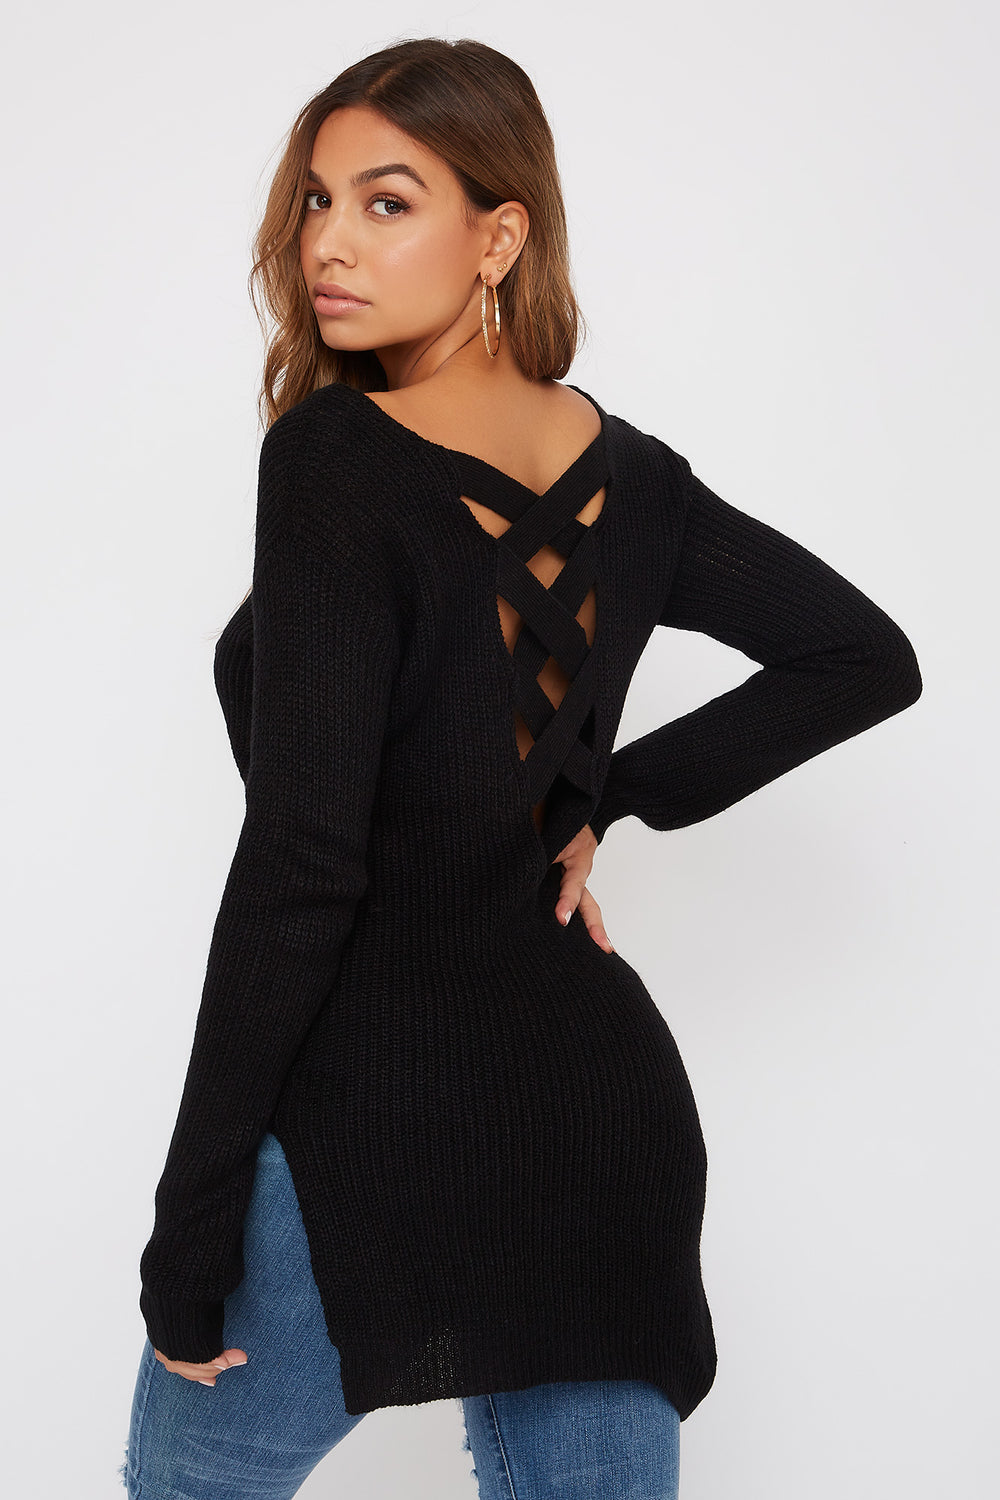 Knit Cross Back Sweater Black